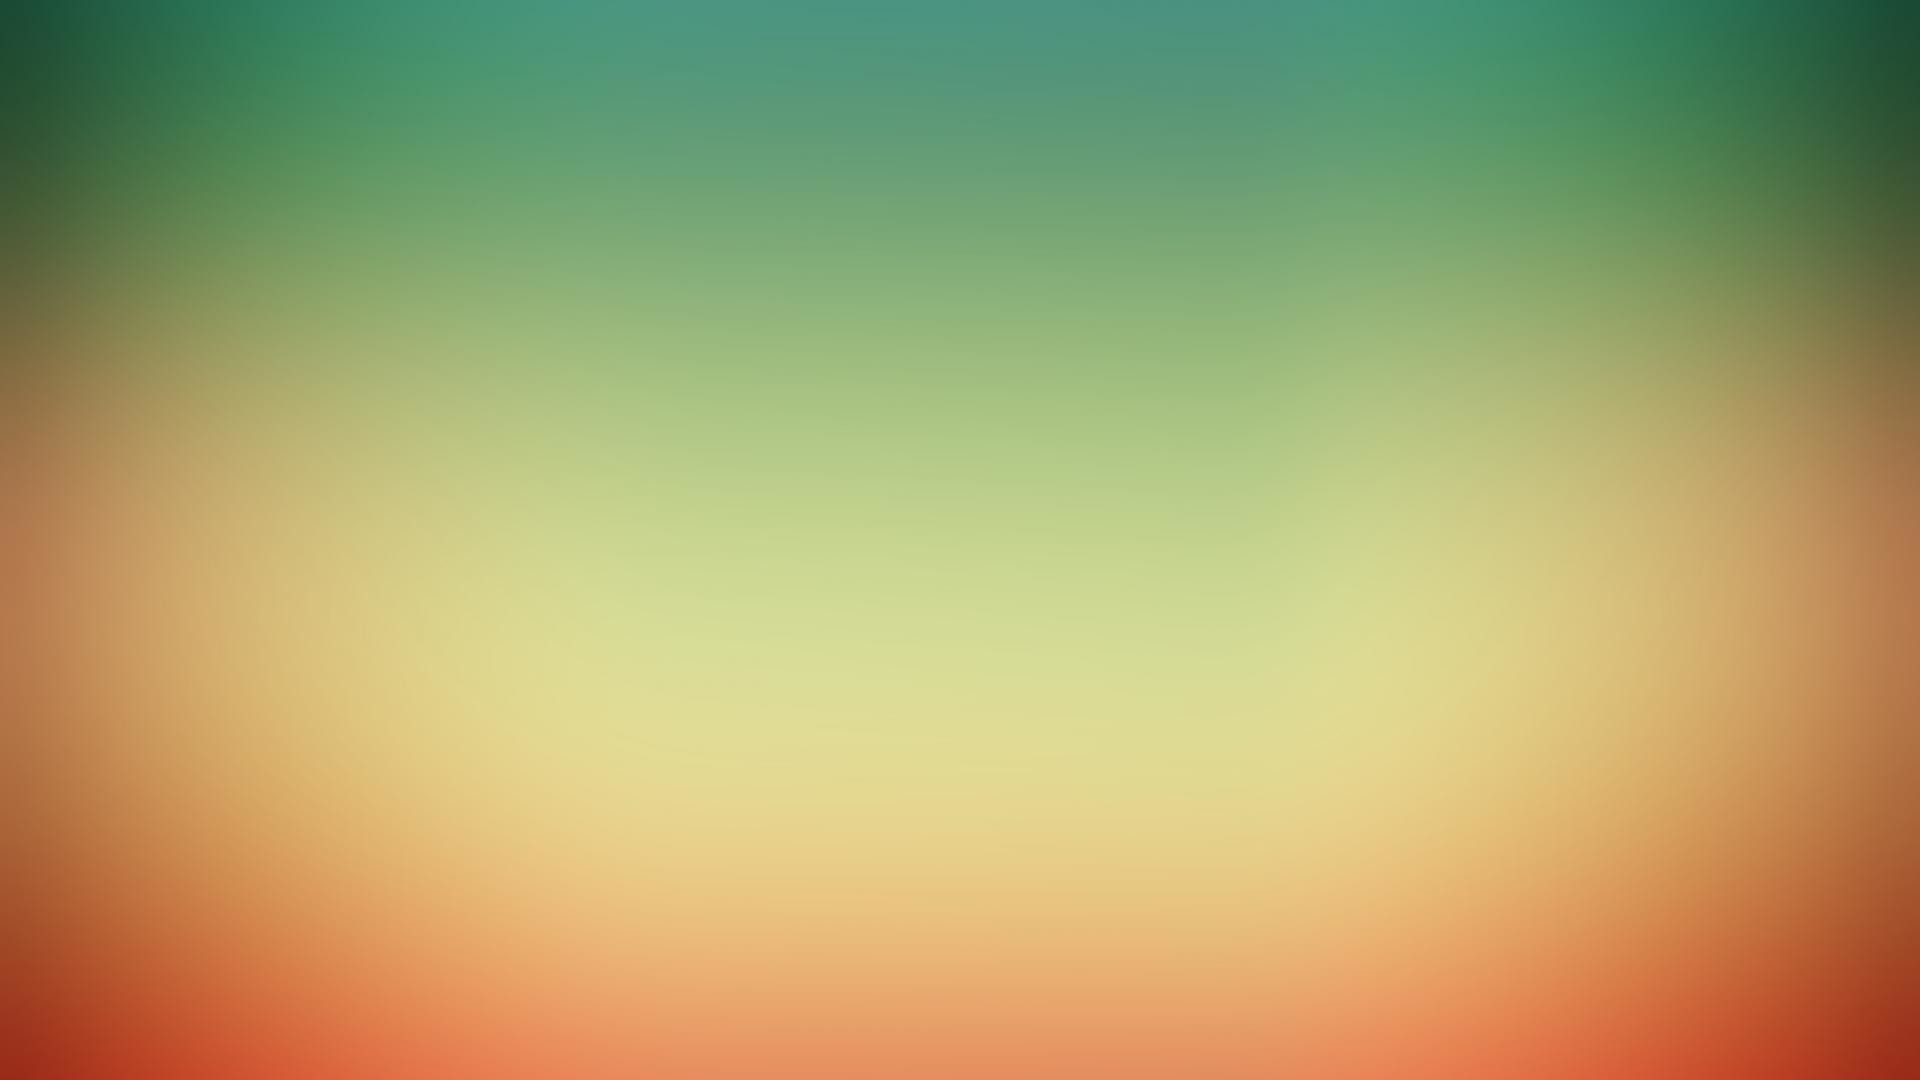 1920x1080 Docky Color Gradient Bars for wallpapers on the App Store